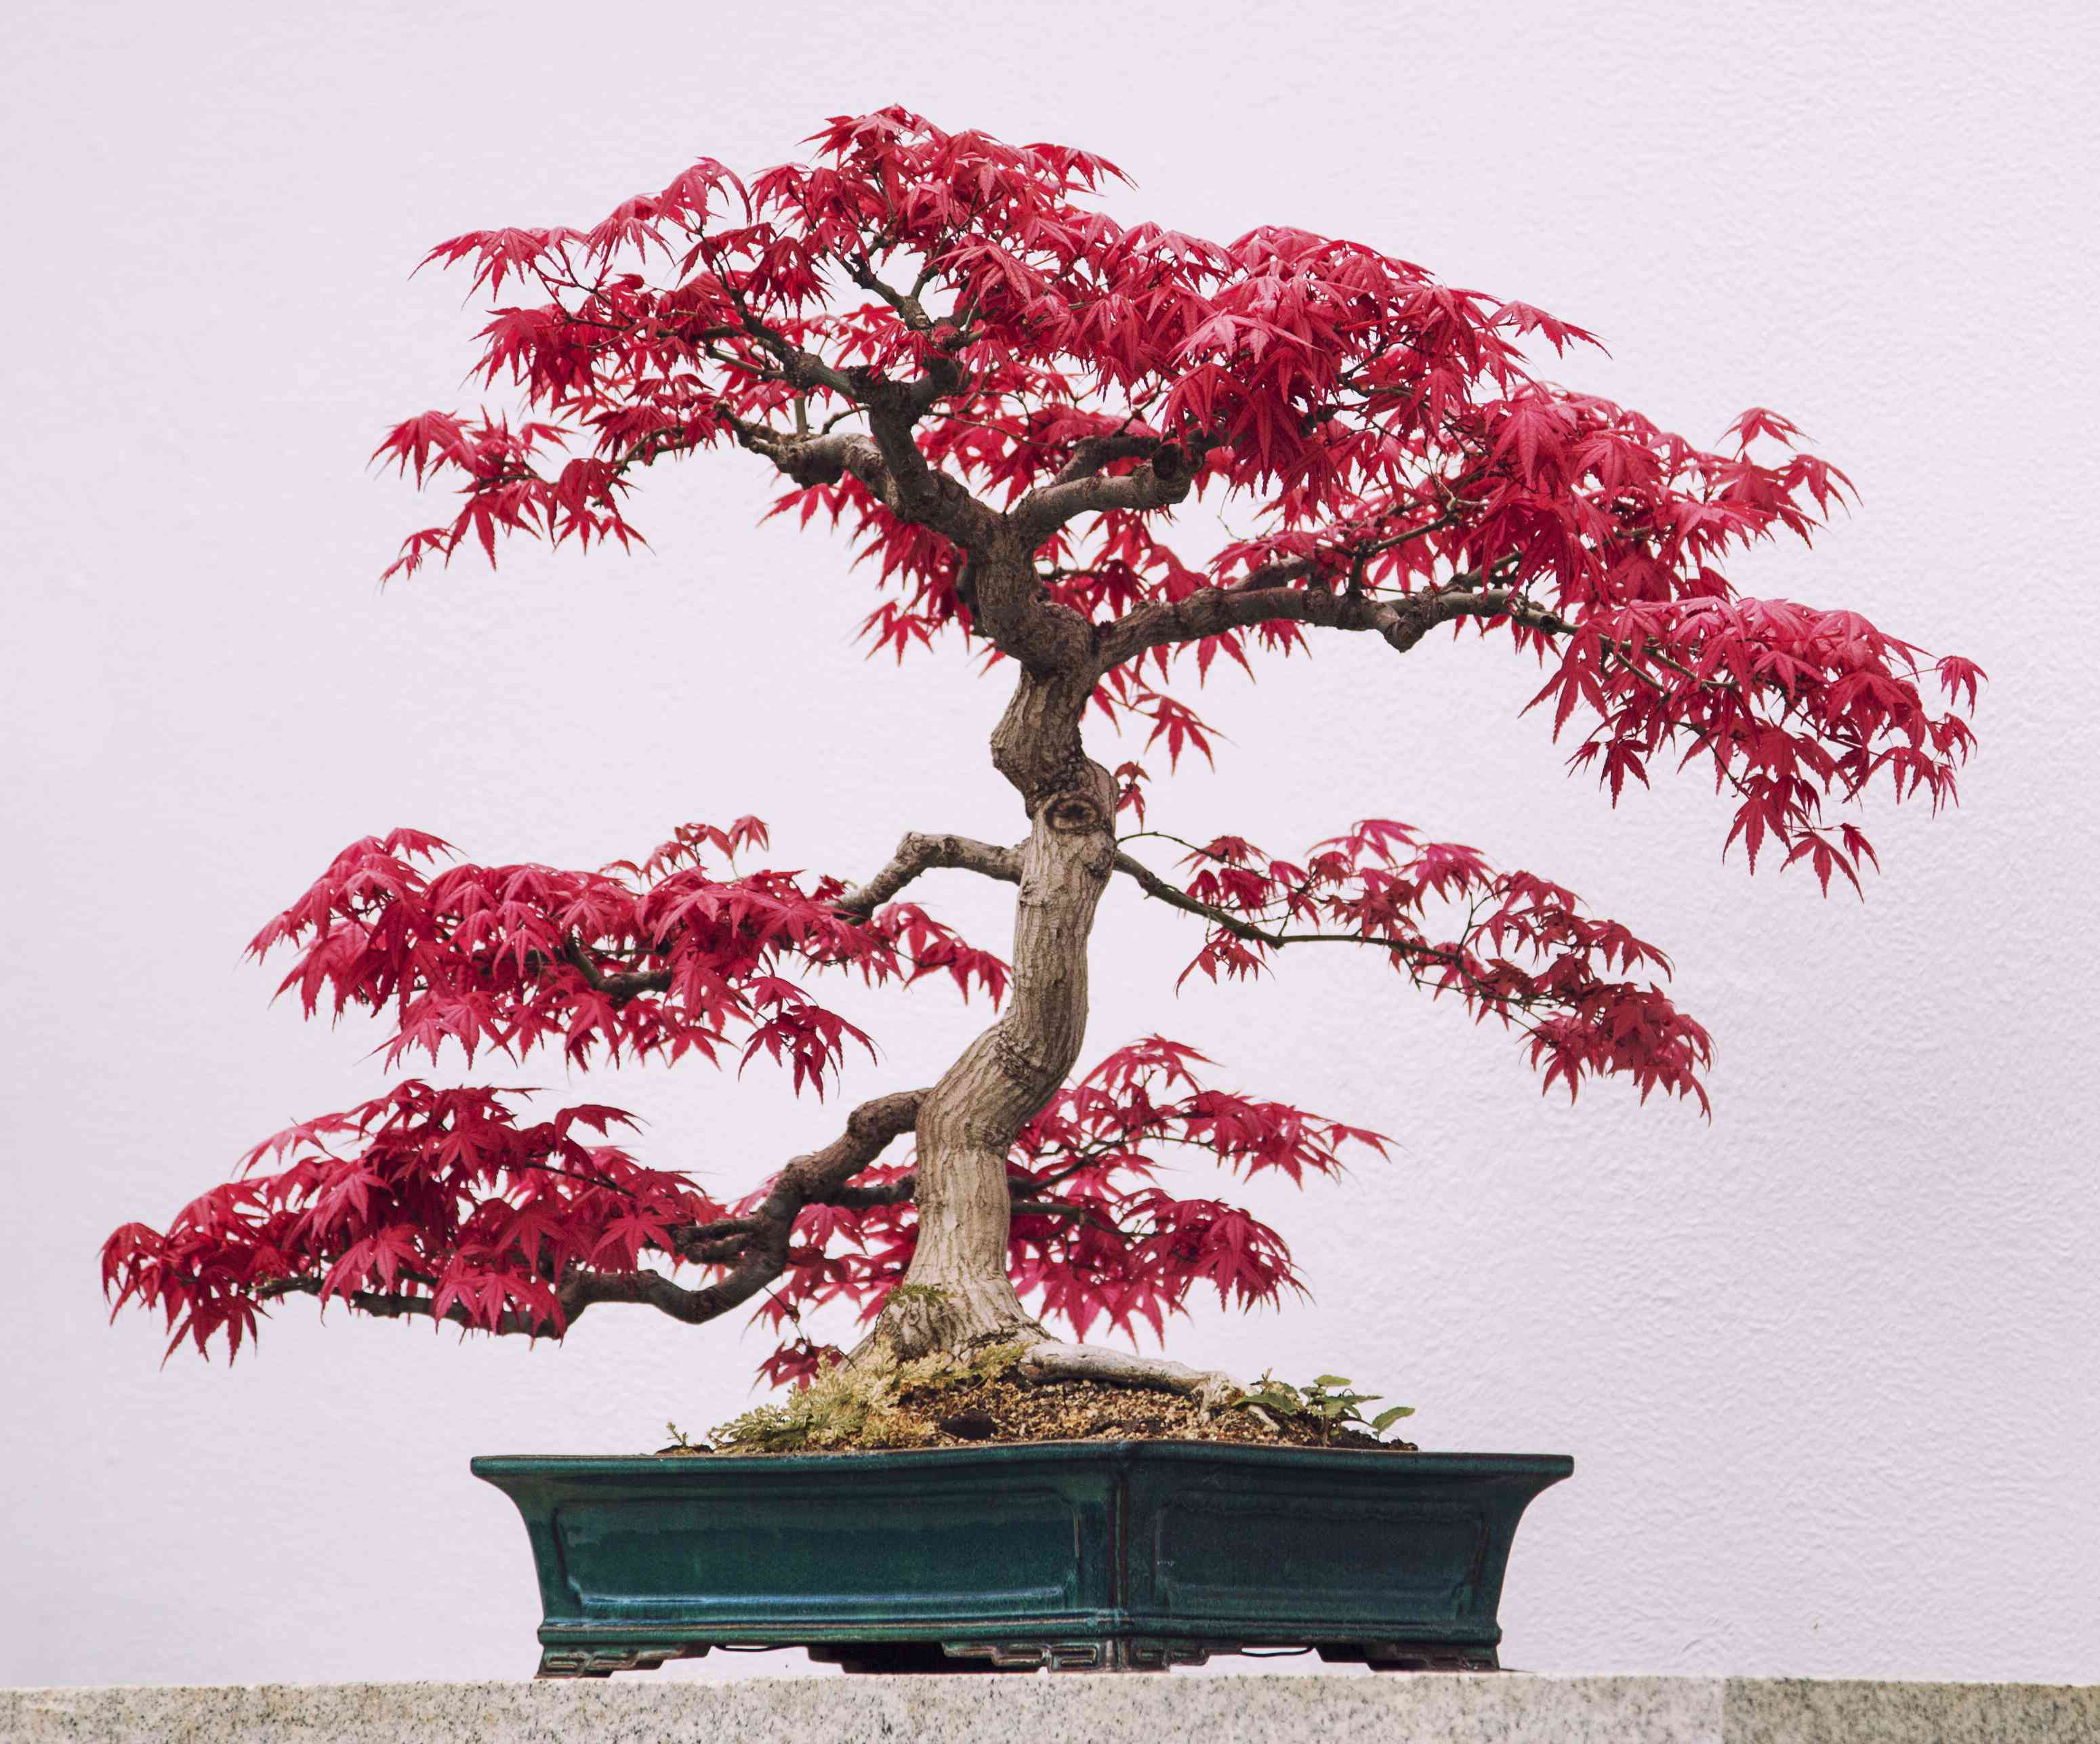 The bright red foliage of the japanese maple bonsai tree contrasts against its tourquoise pot and pale pink background.